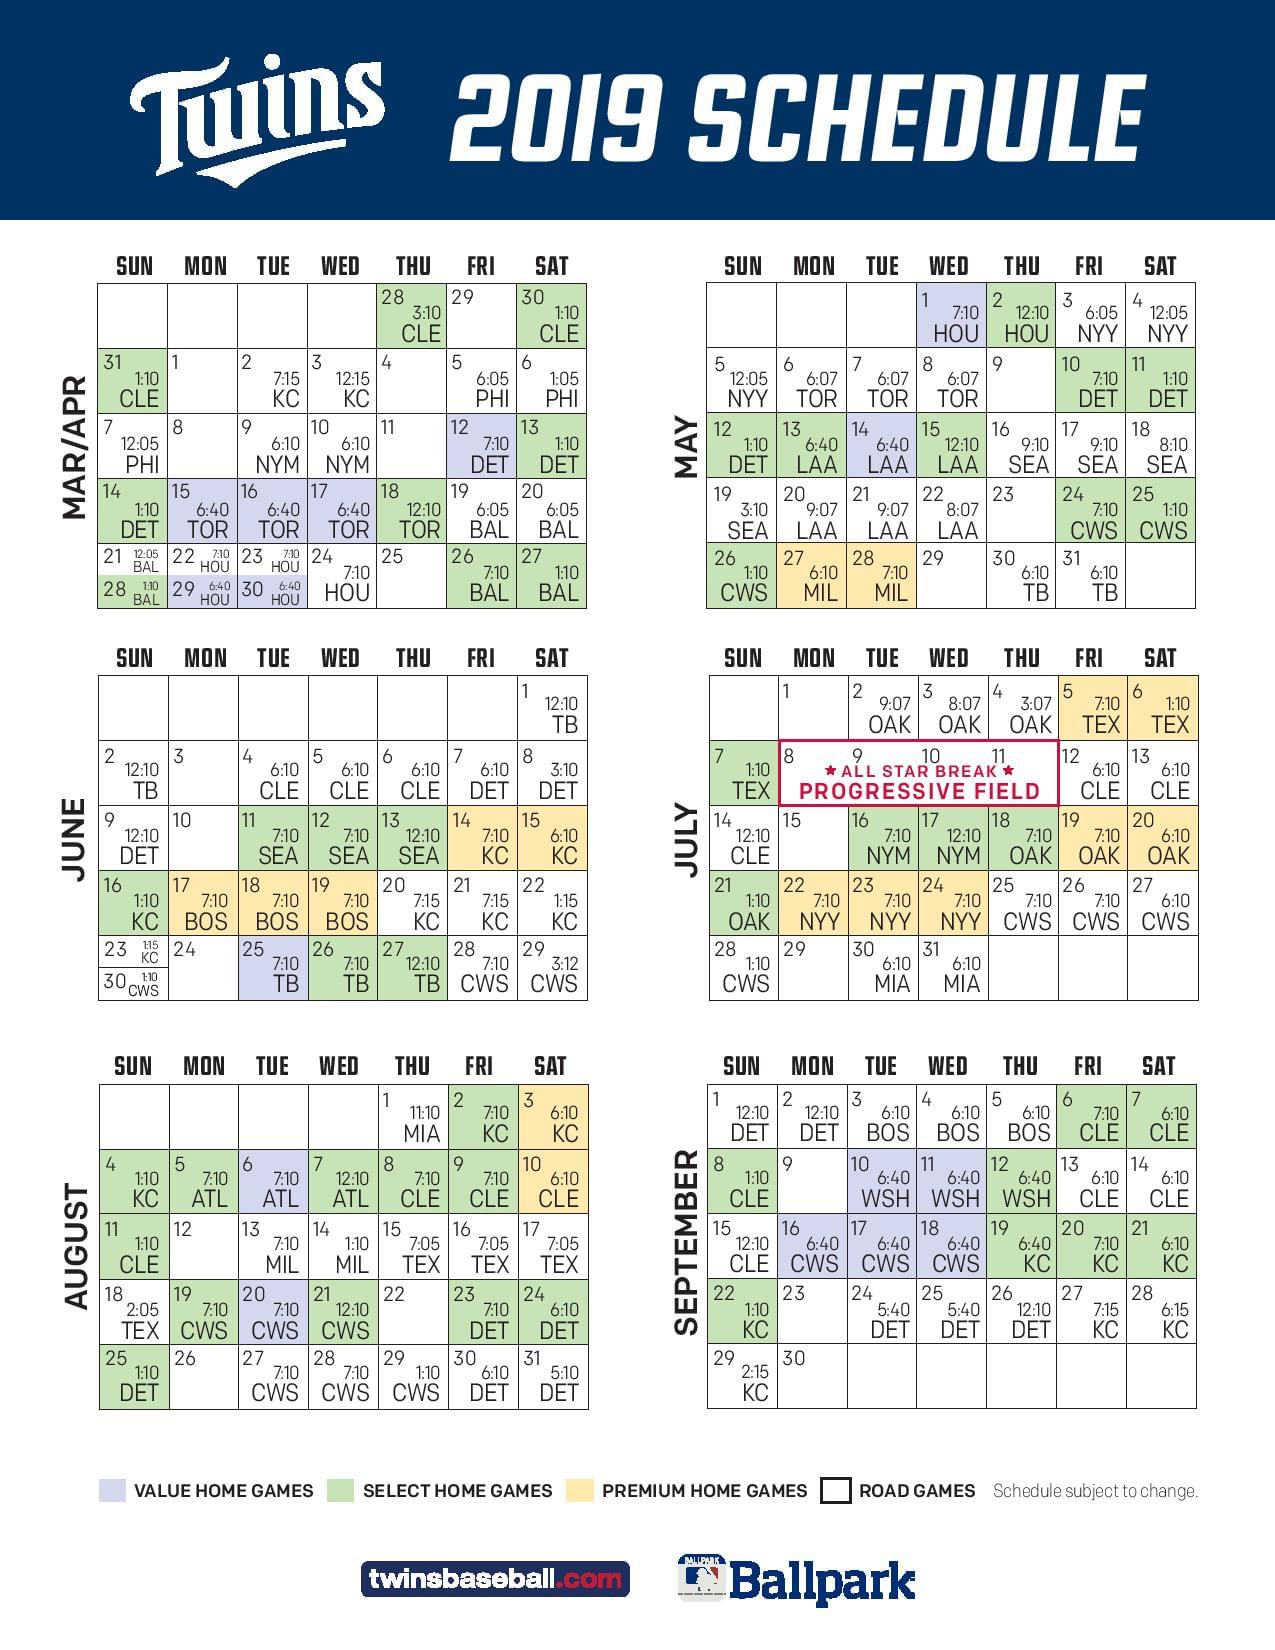 Dynamite image with twins printable schedule